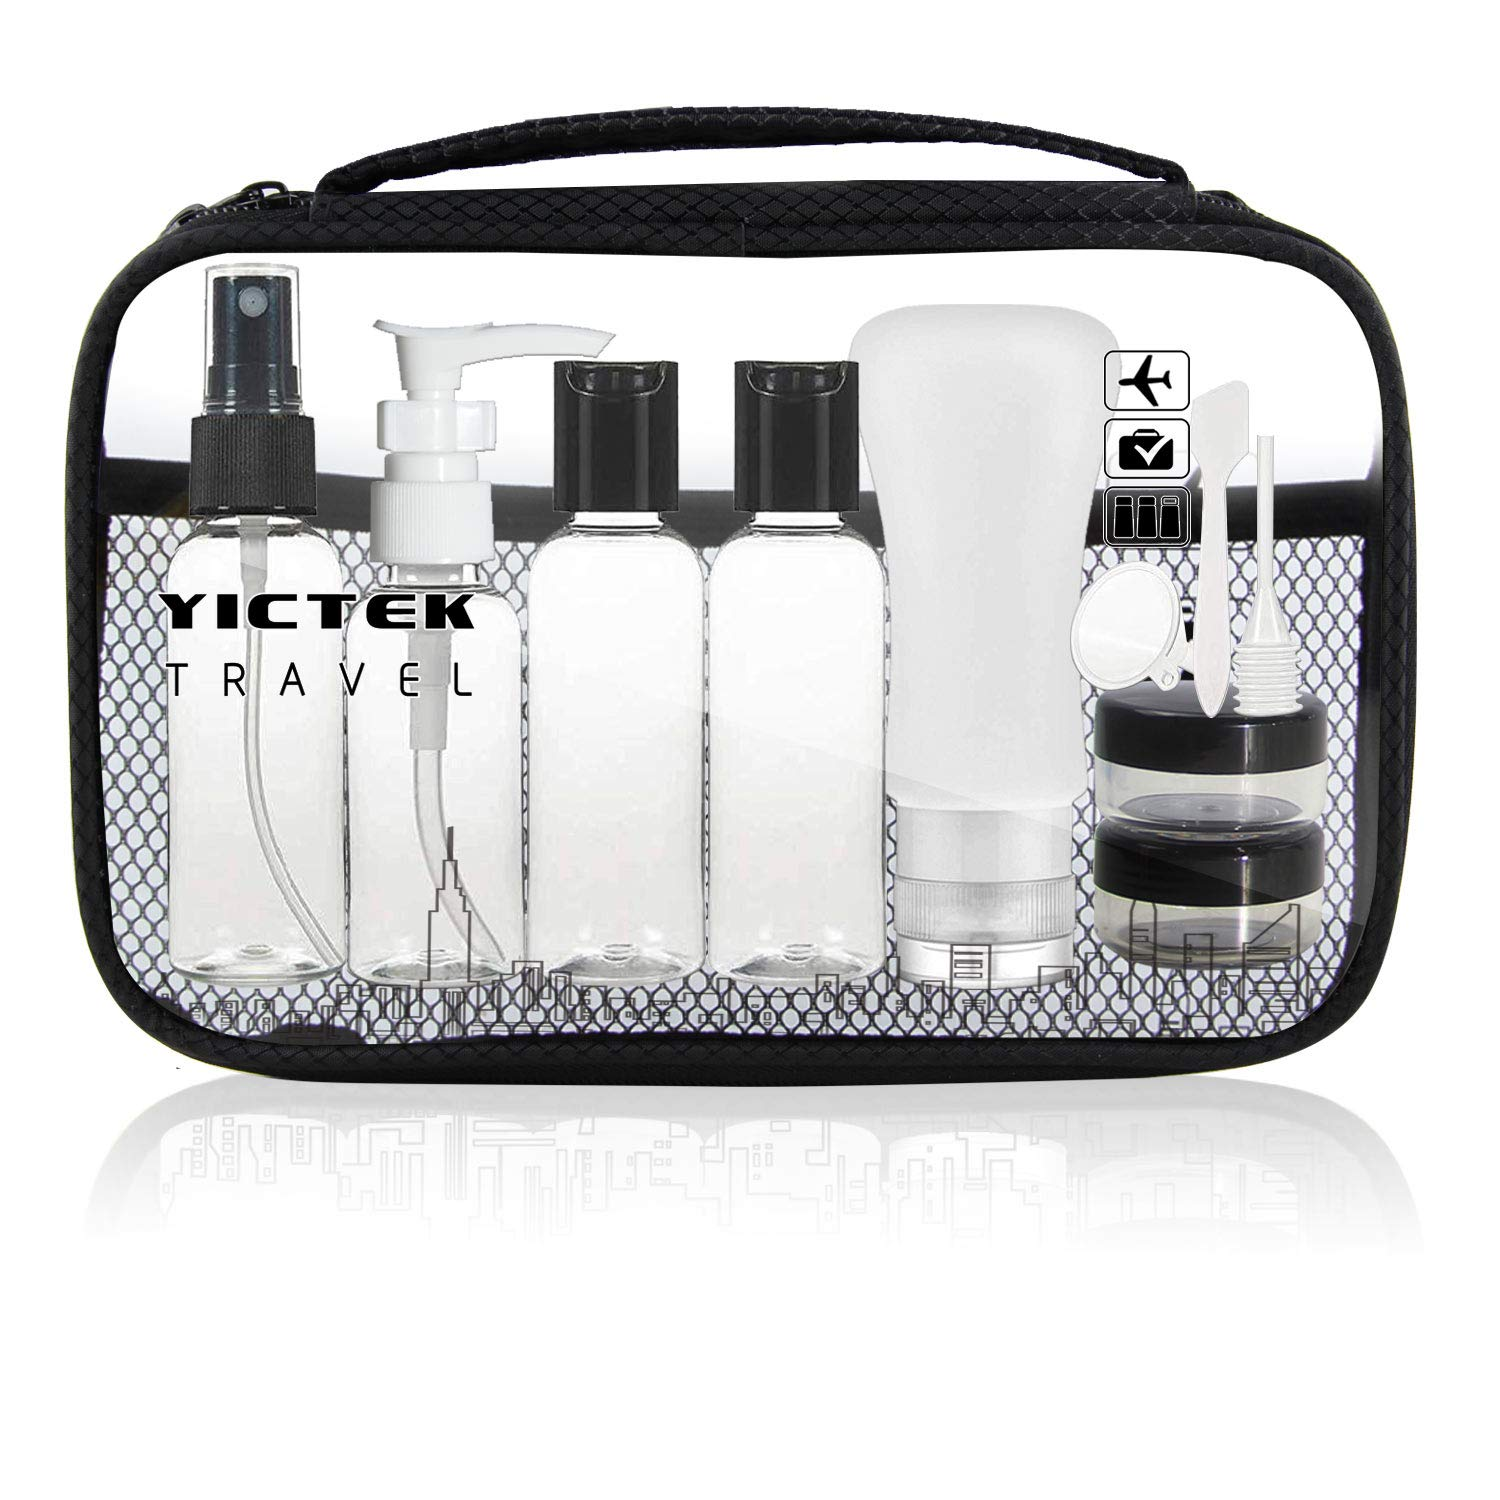 Travel Bottles Containers,Travel Size Toiletries TSA Approved Travel Accessories Tubes Kit with Clear Quart Toiletry Bag for Liquids, Carry-On Luggage Set for Women Men